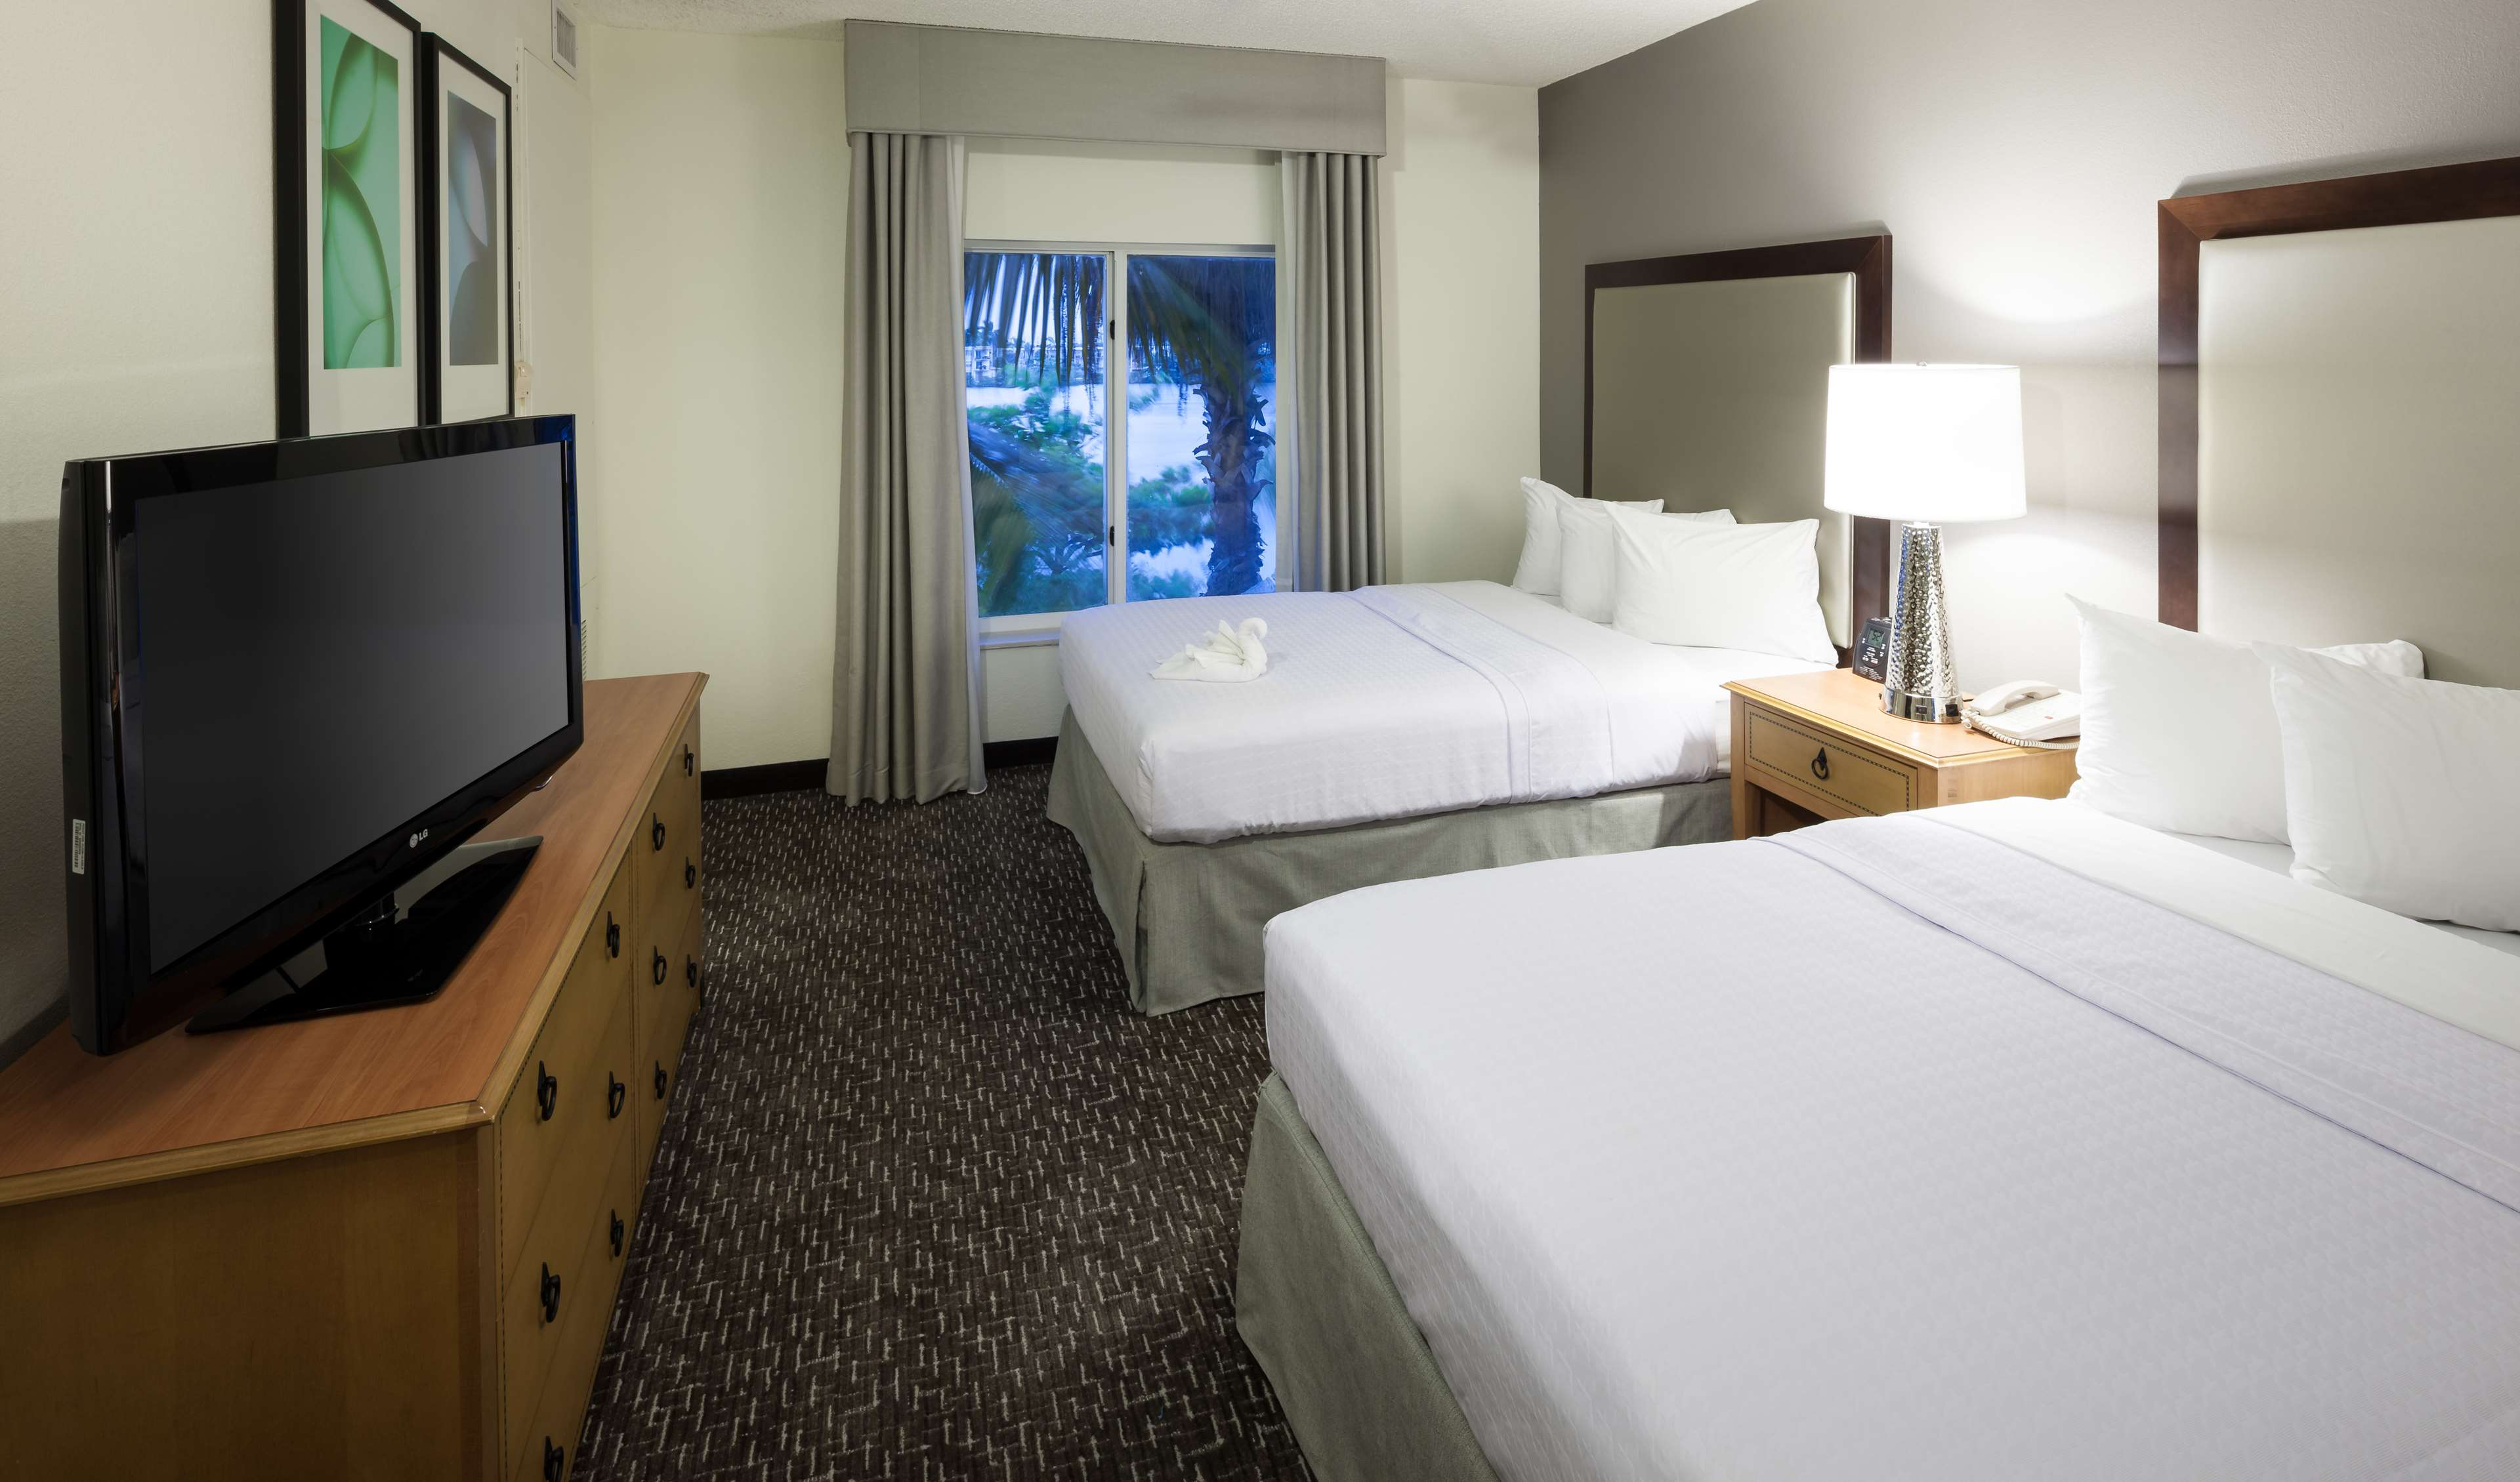 Homewood Suites by Hilton Miami-Airport/Blue Lagoon image 23